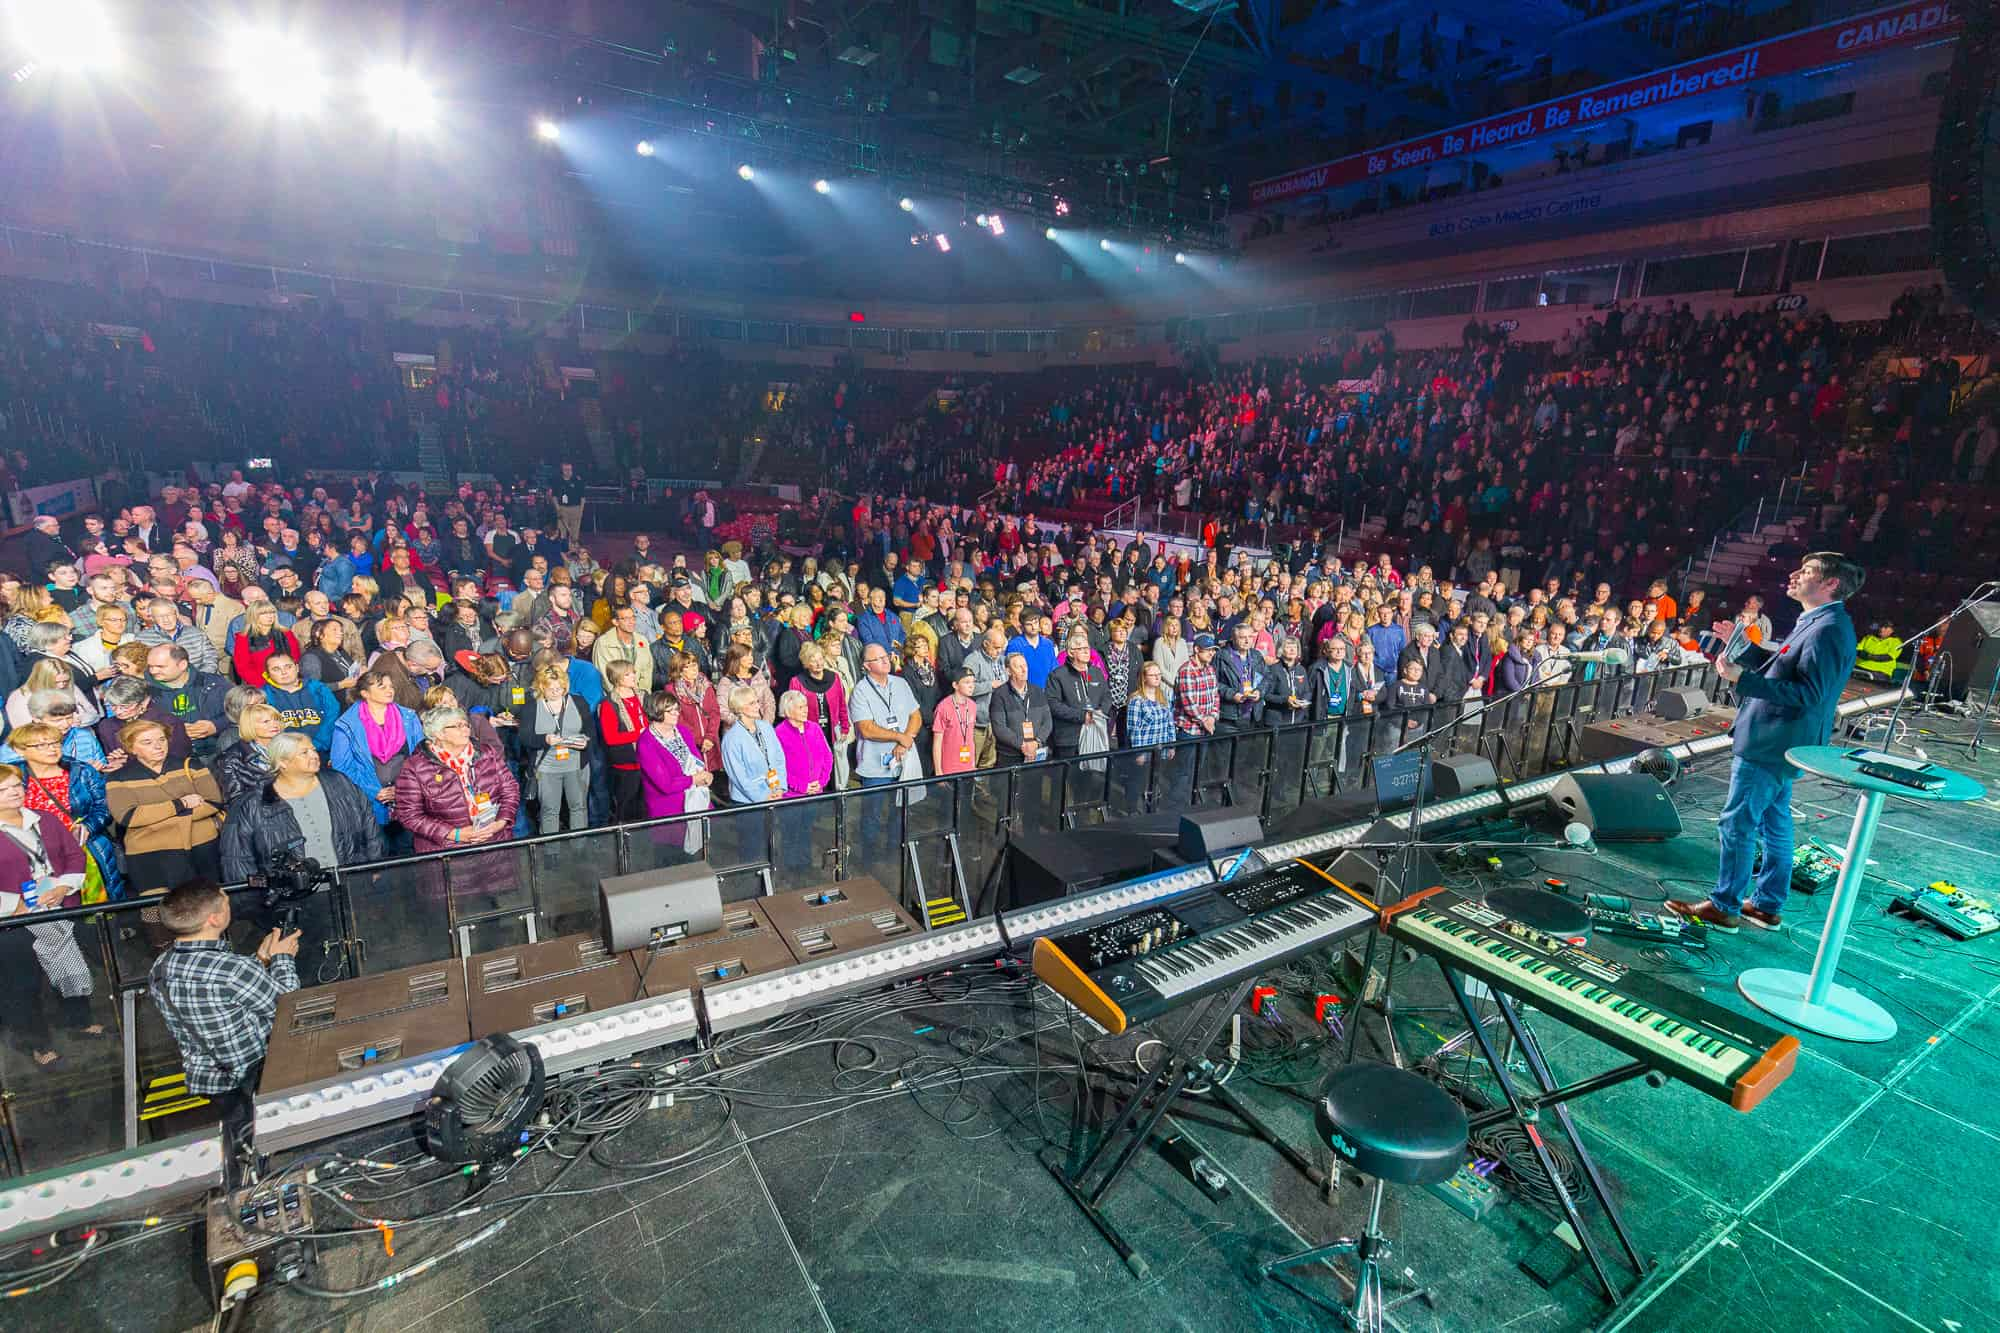 Thousands made their way to the Mile One Centre for a time of worship and to hear a message of hope from Will Graham.